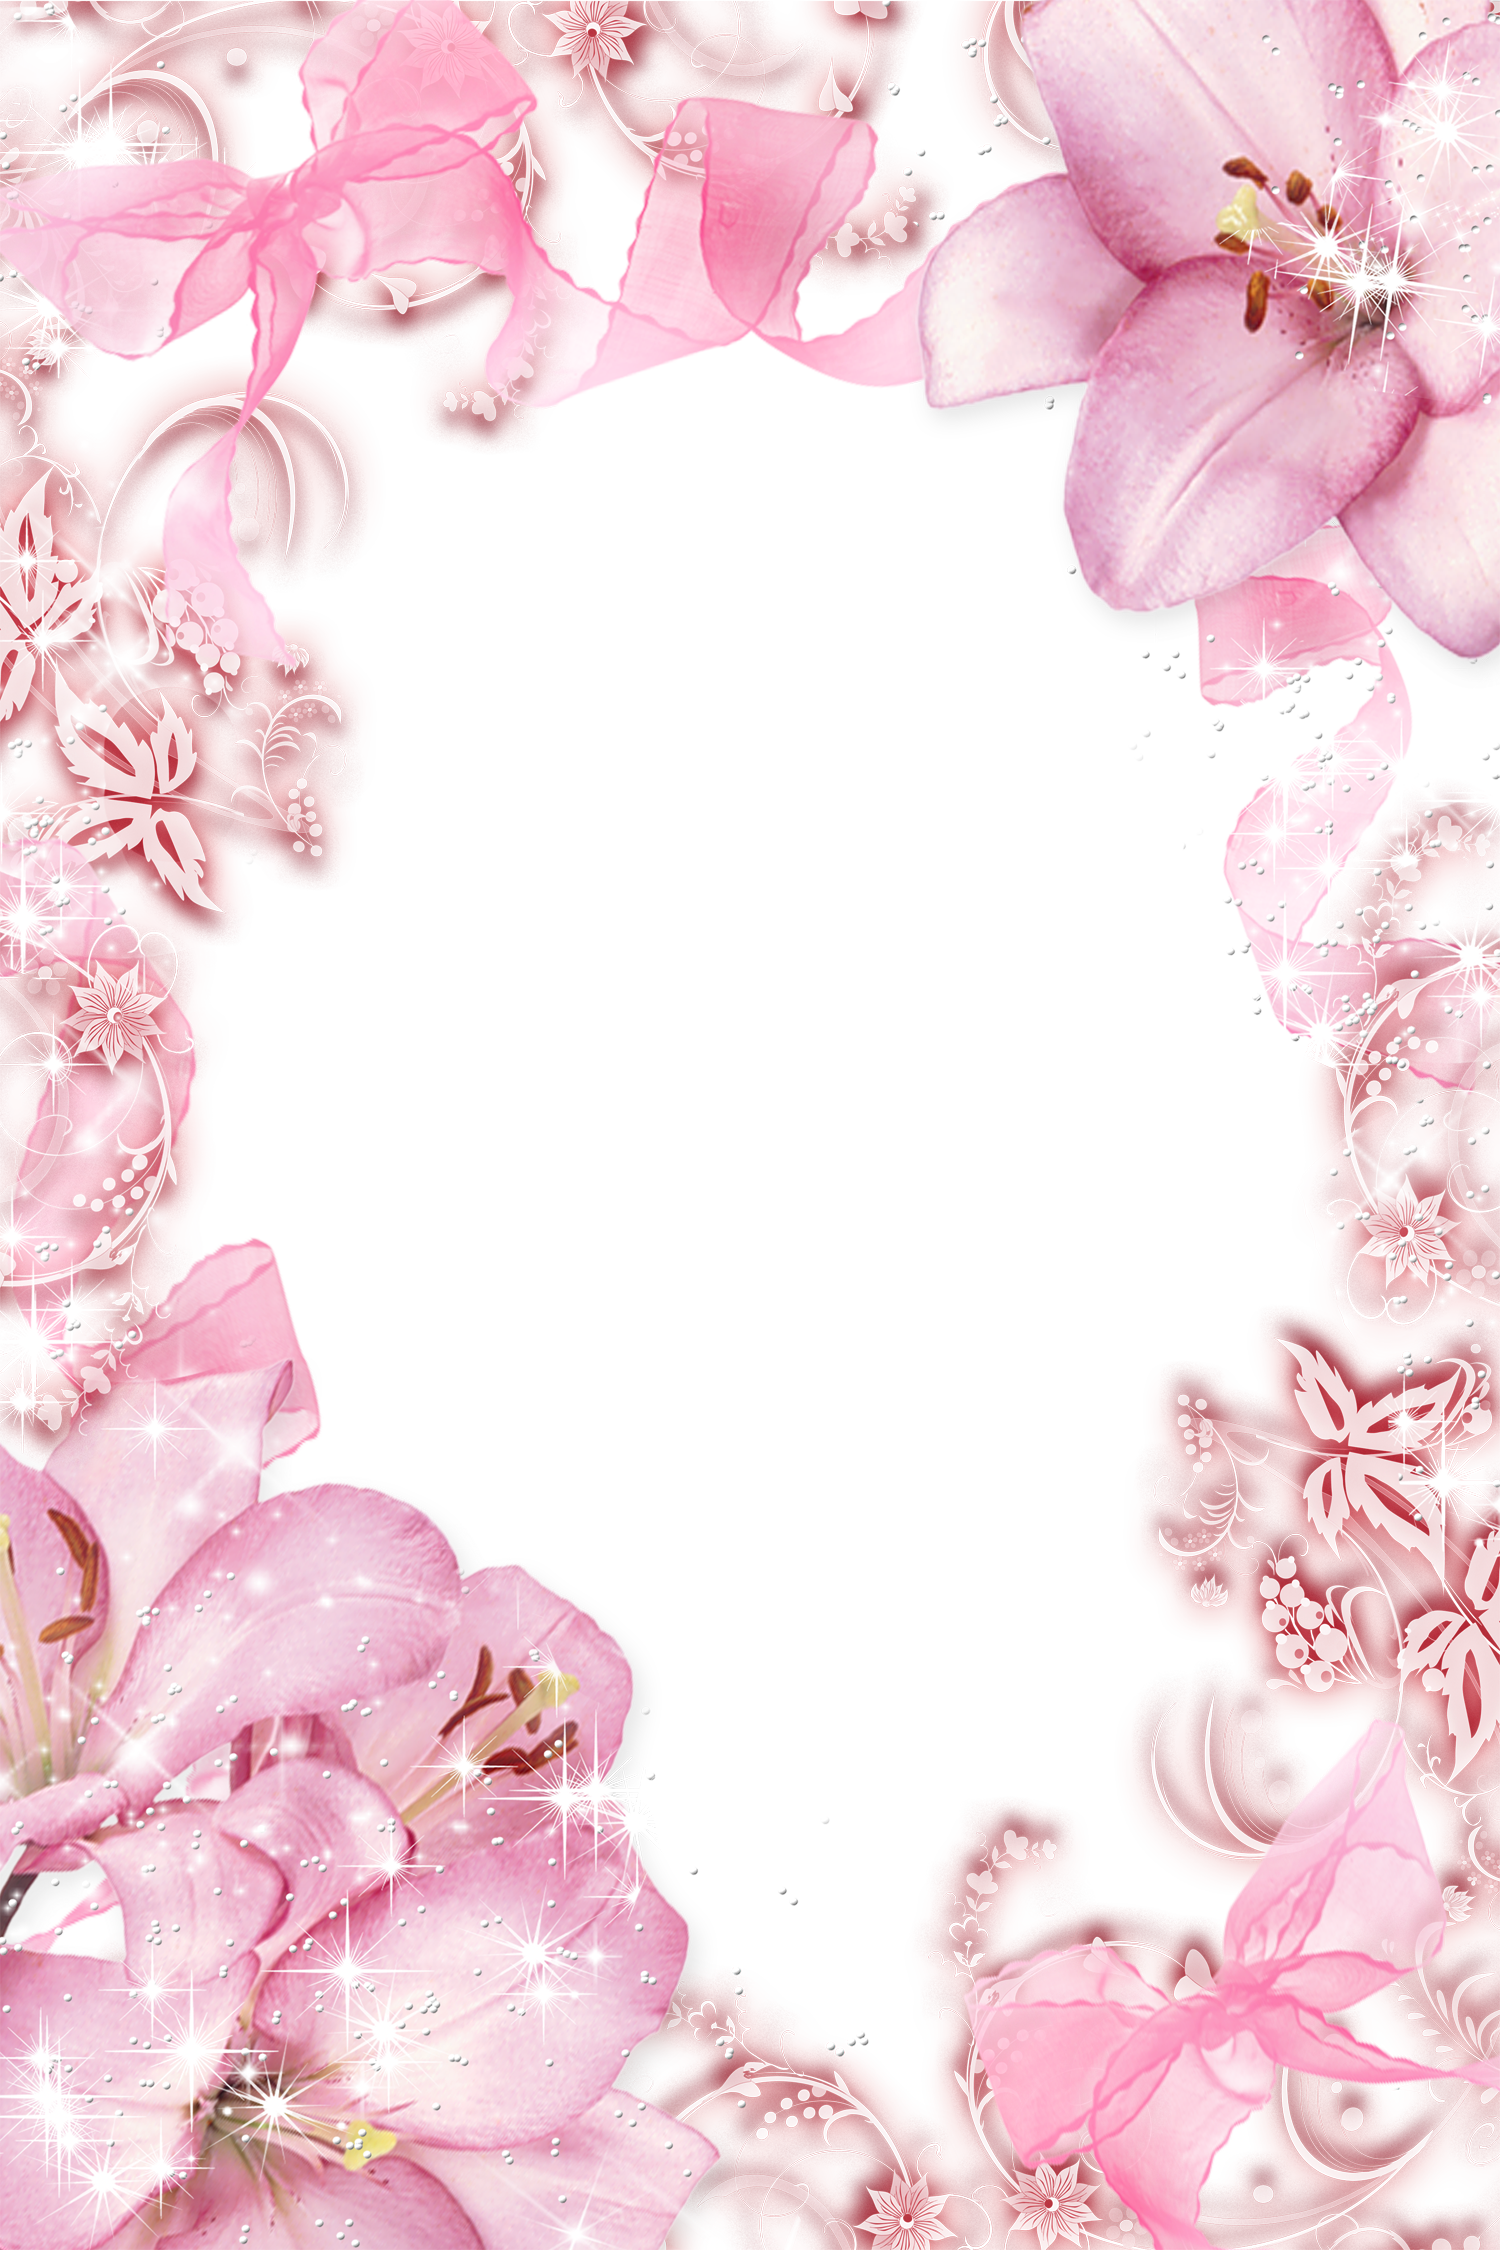 graphic transparent stock Flowers png photo frame. Transparent pink